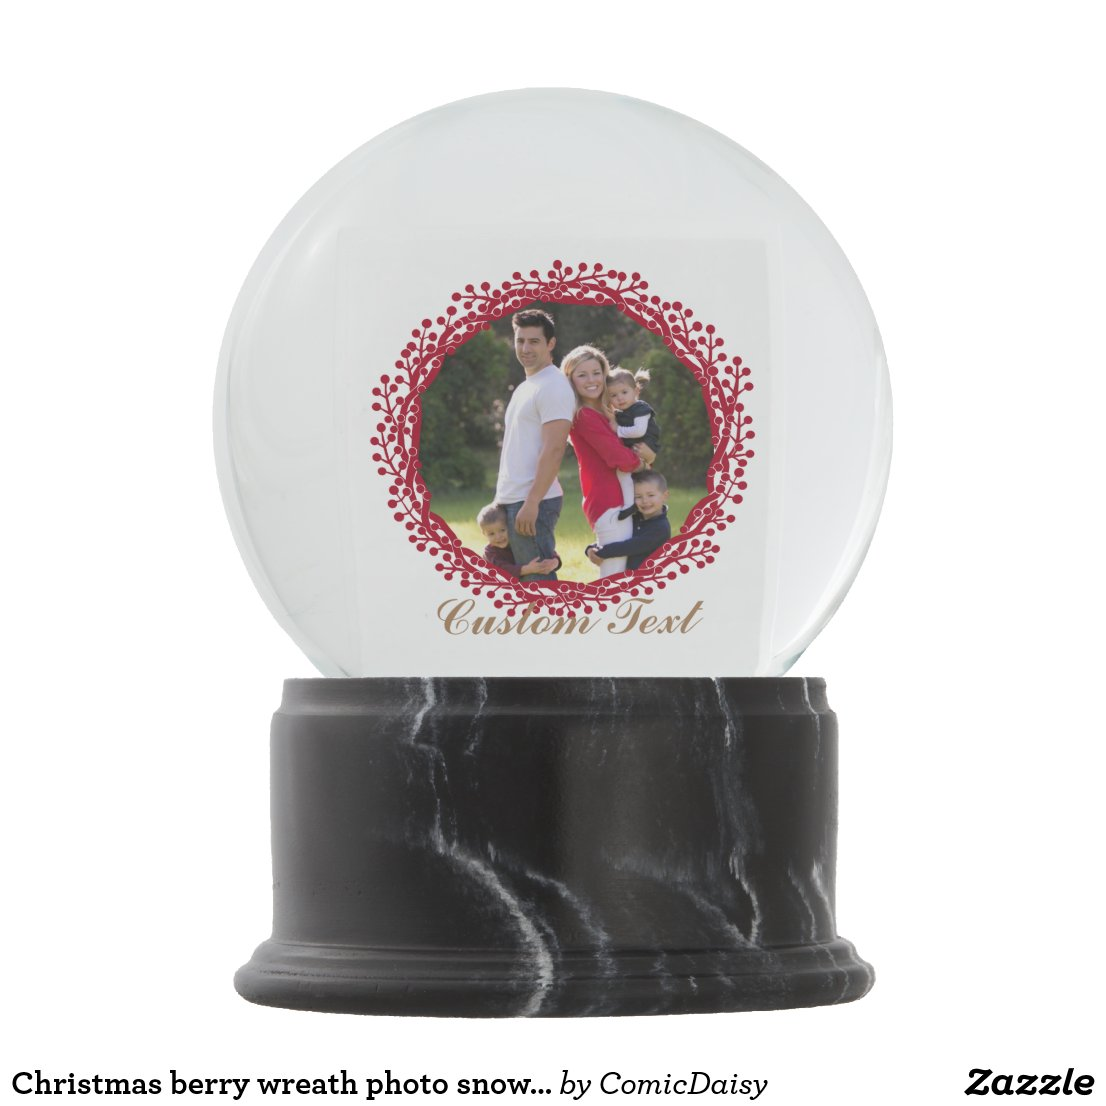 Christmas berry wreath photo snowglobe